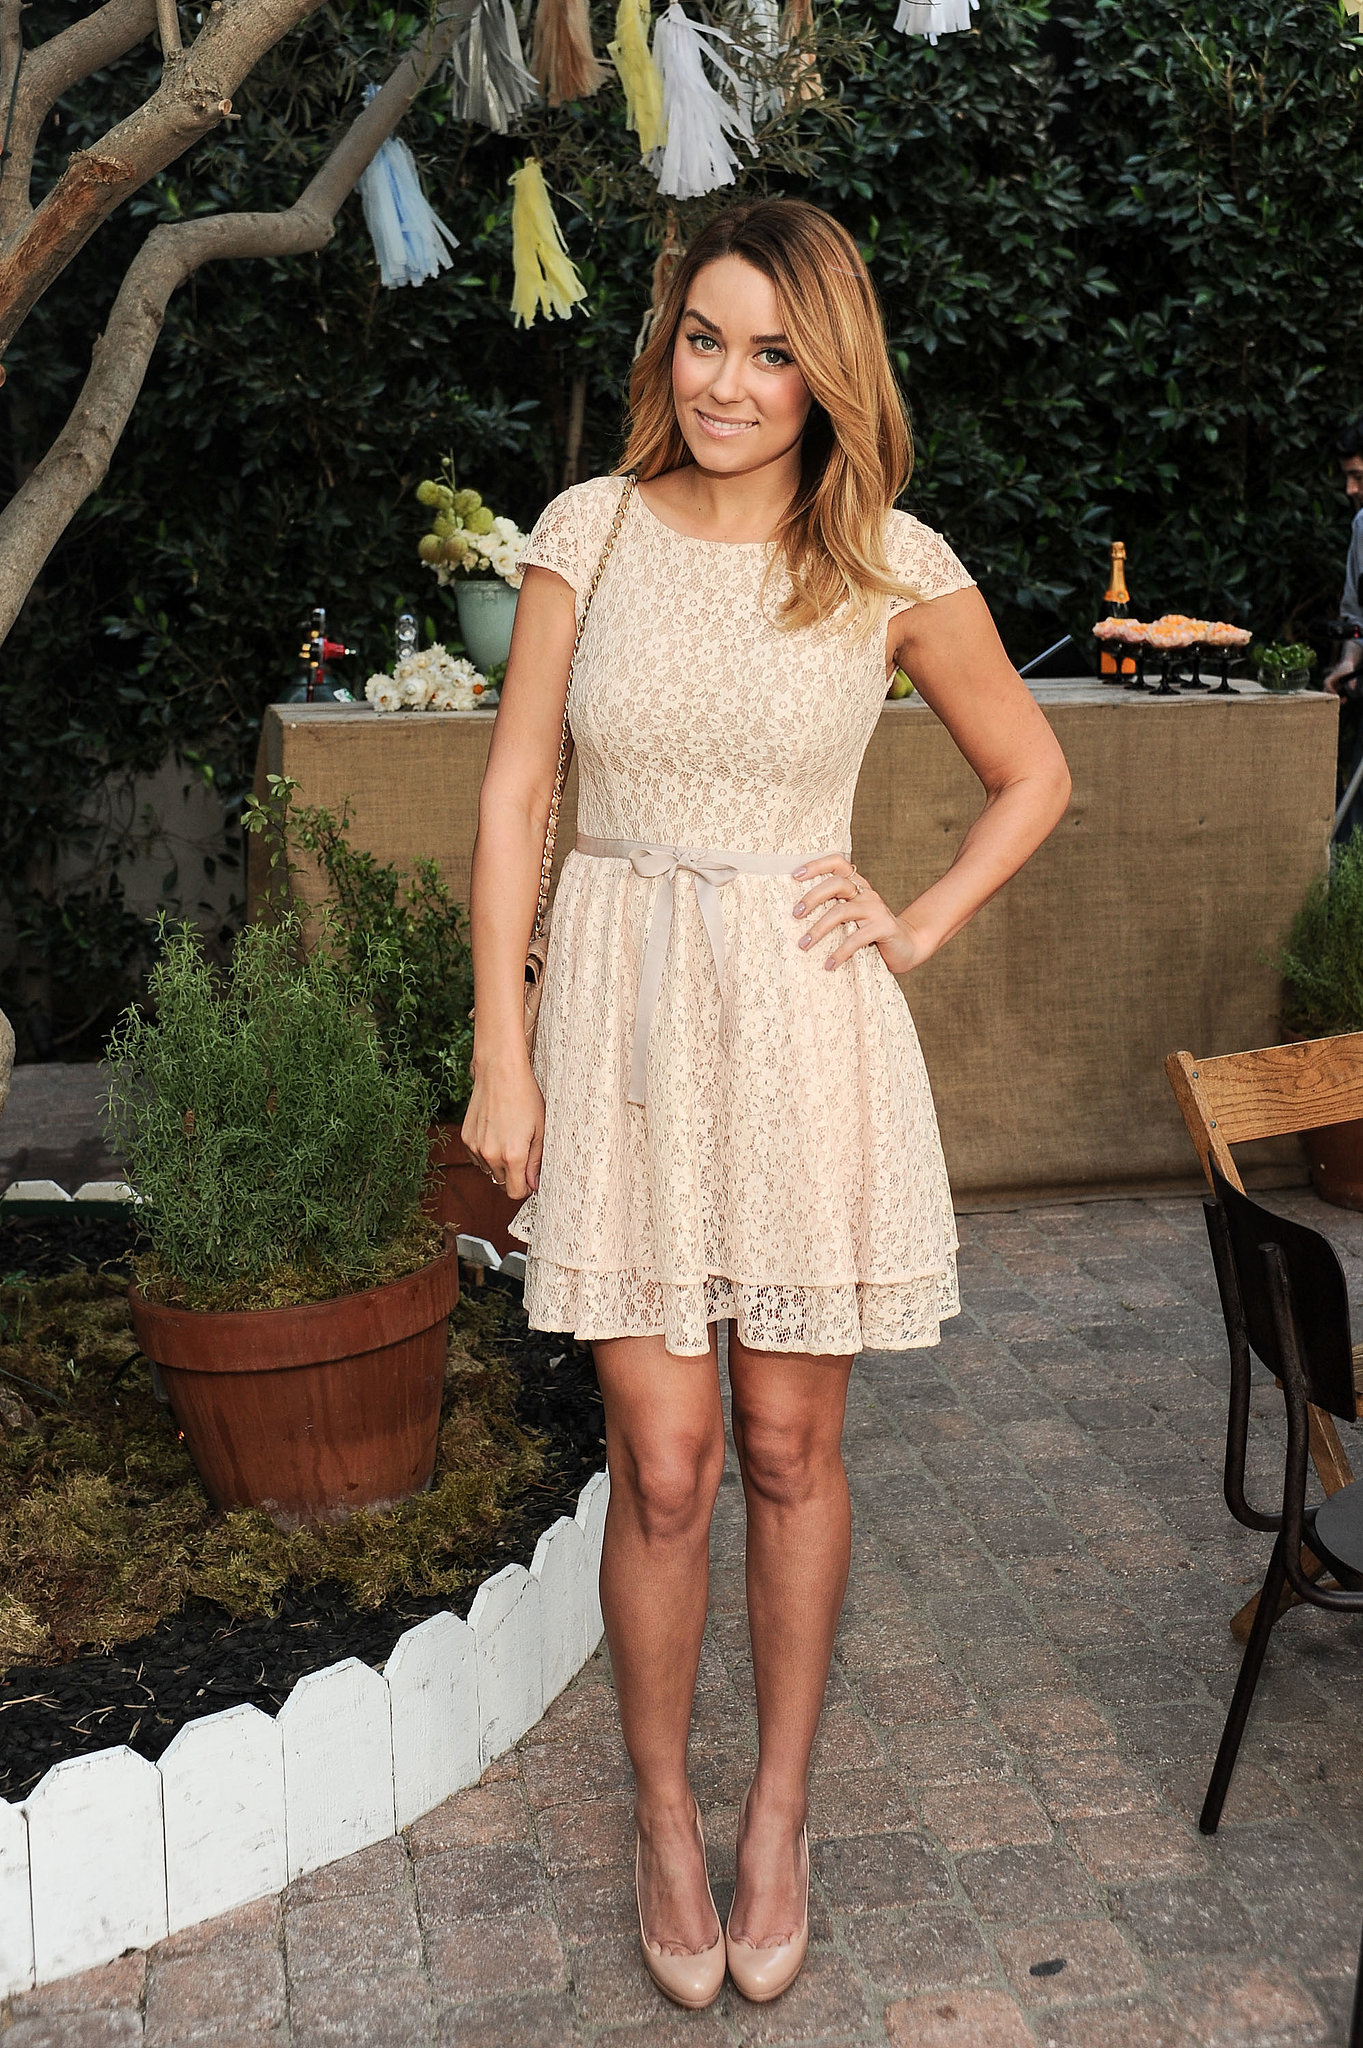 For a ShoeMint event in 2012, Lauren wore a cream-colored lace dress with her beloved nude Christian Louboutins. Lesson from Lauren: get a double dose of sweetness with a lace mini and bow belt.